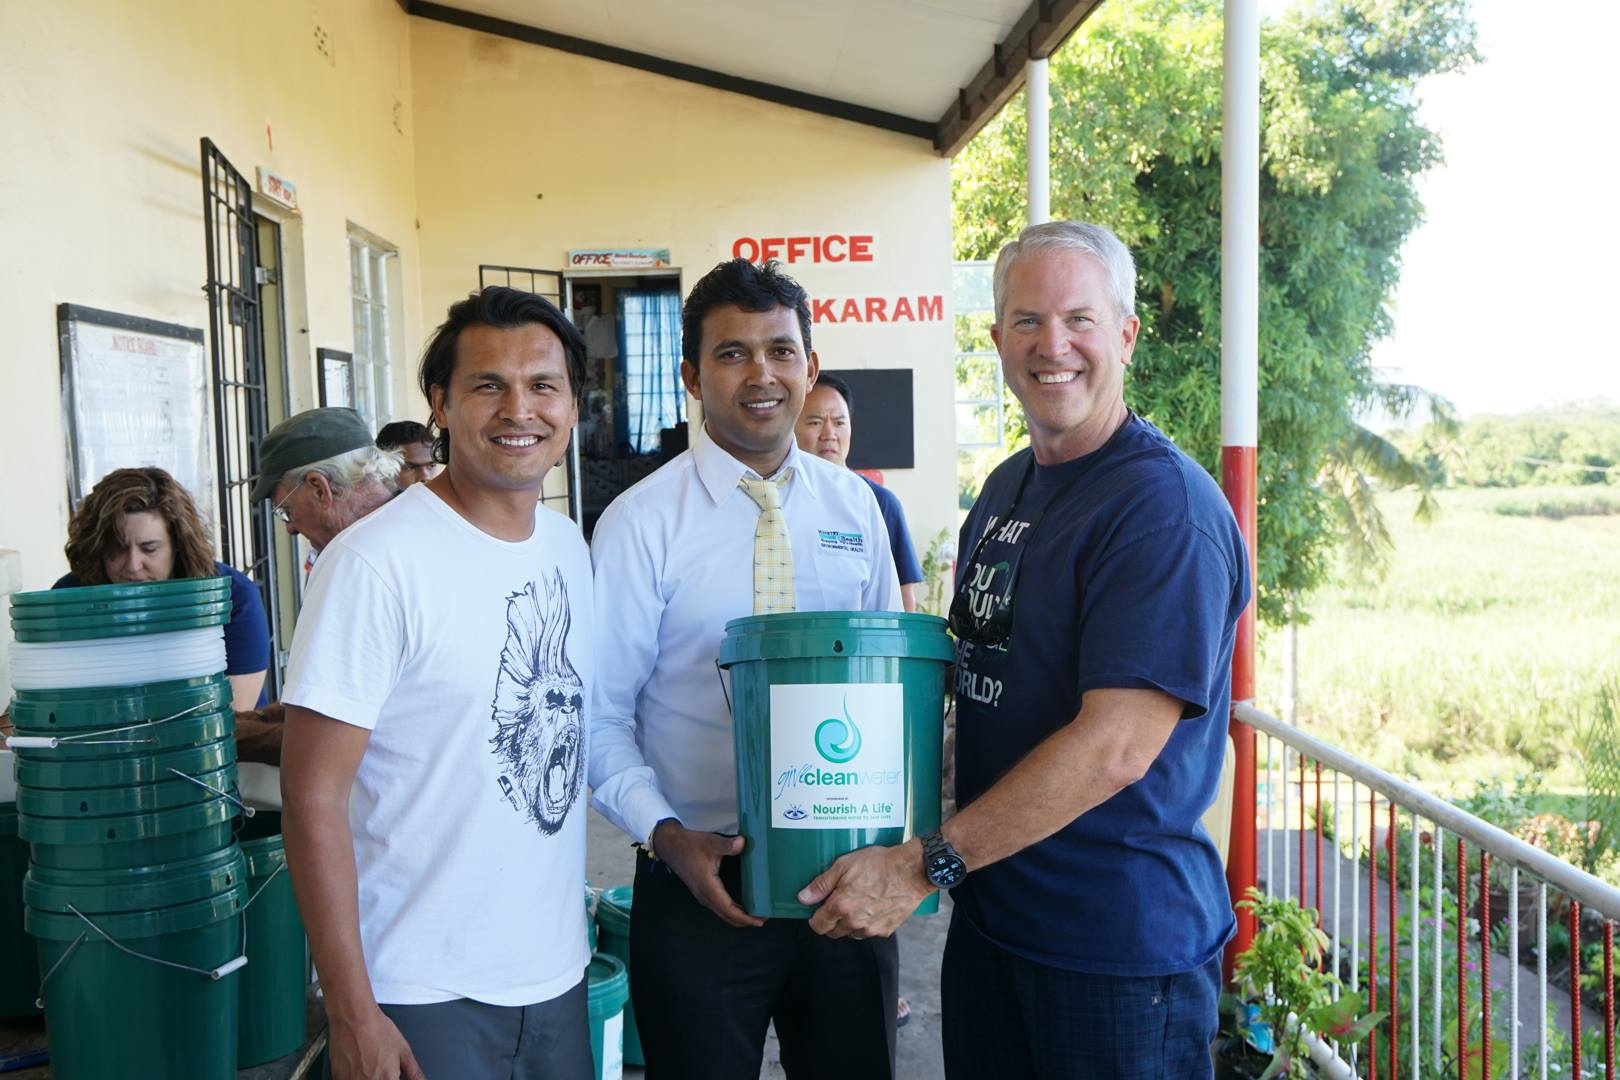 Left to right:Actor Adam Beach, Fiji Western Division Health Inspector Rakesh Kumar, and Give Clean Water founder Darrel Larson.